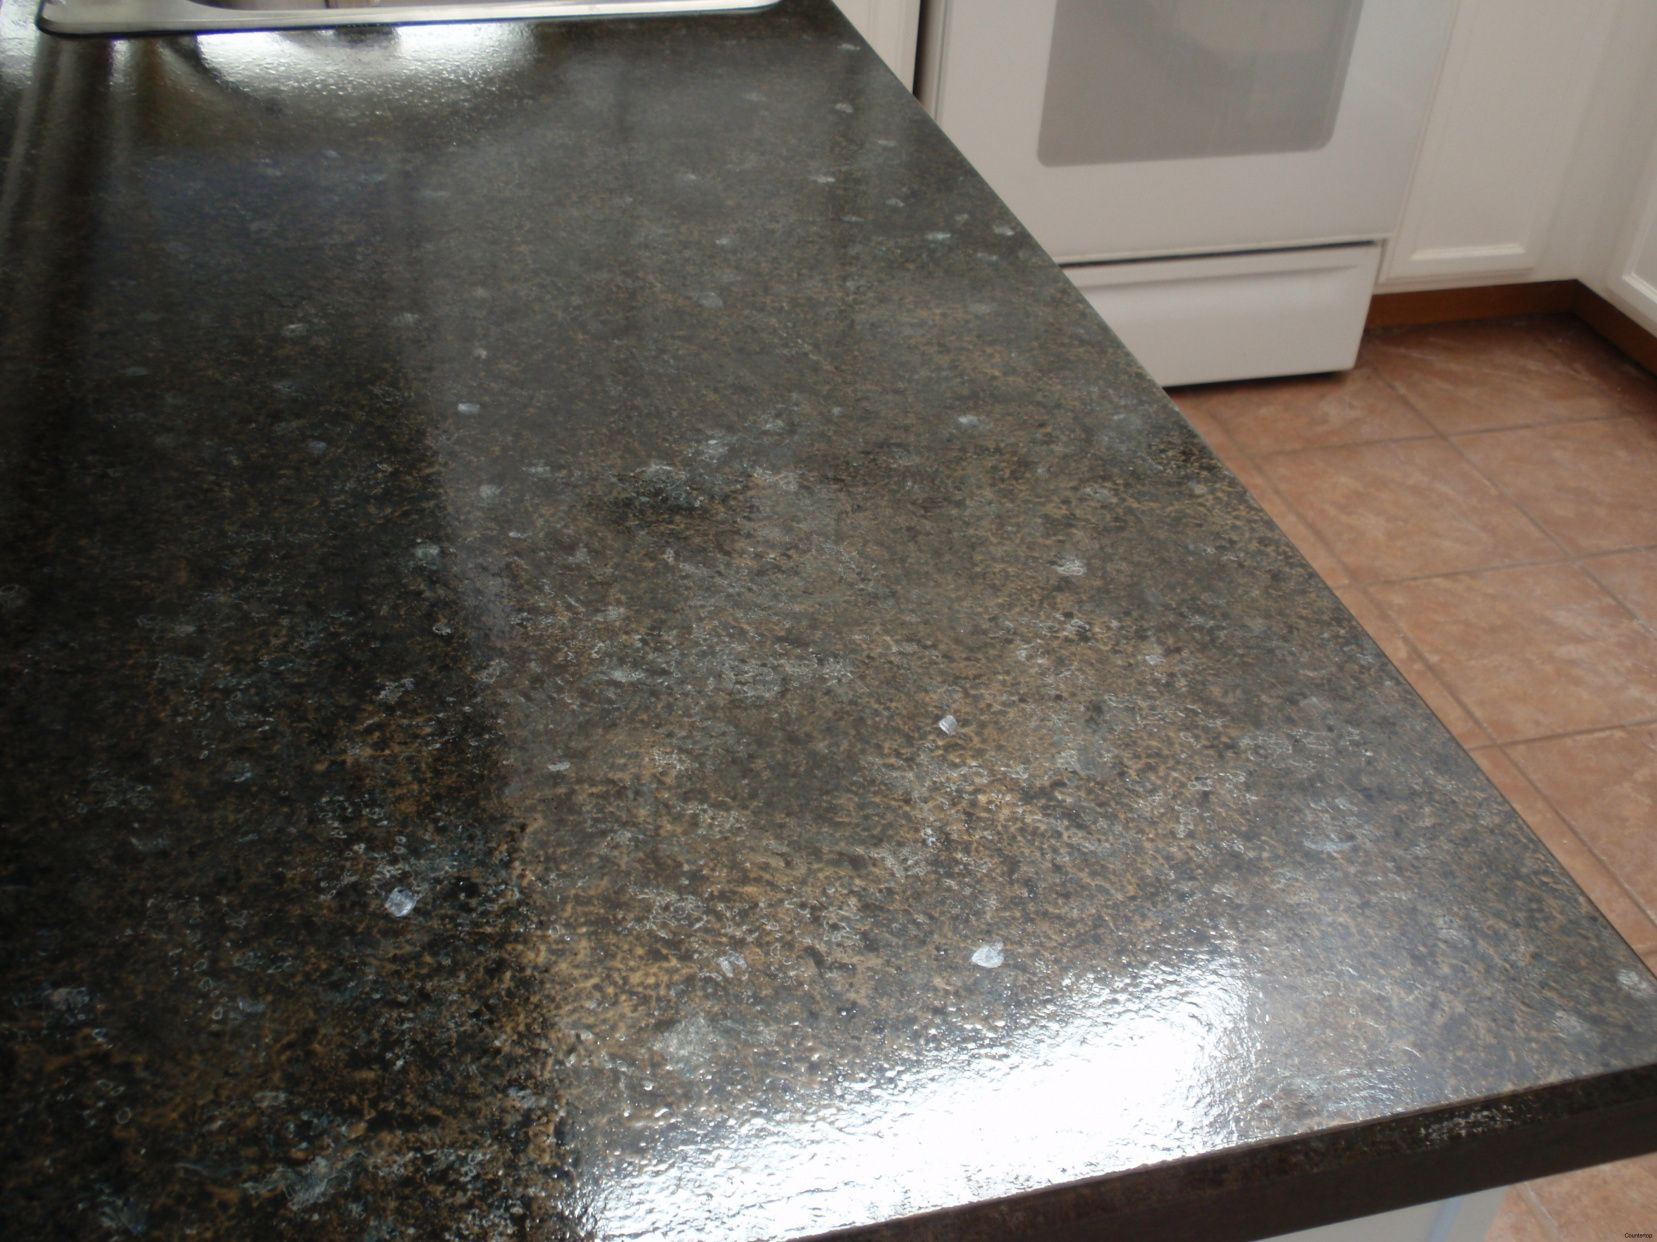 Beau 77+ Refinish Granite Countertops   Small Kitchen Island Ideas With Seating  Check More At Http